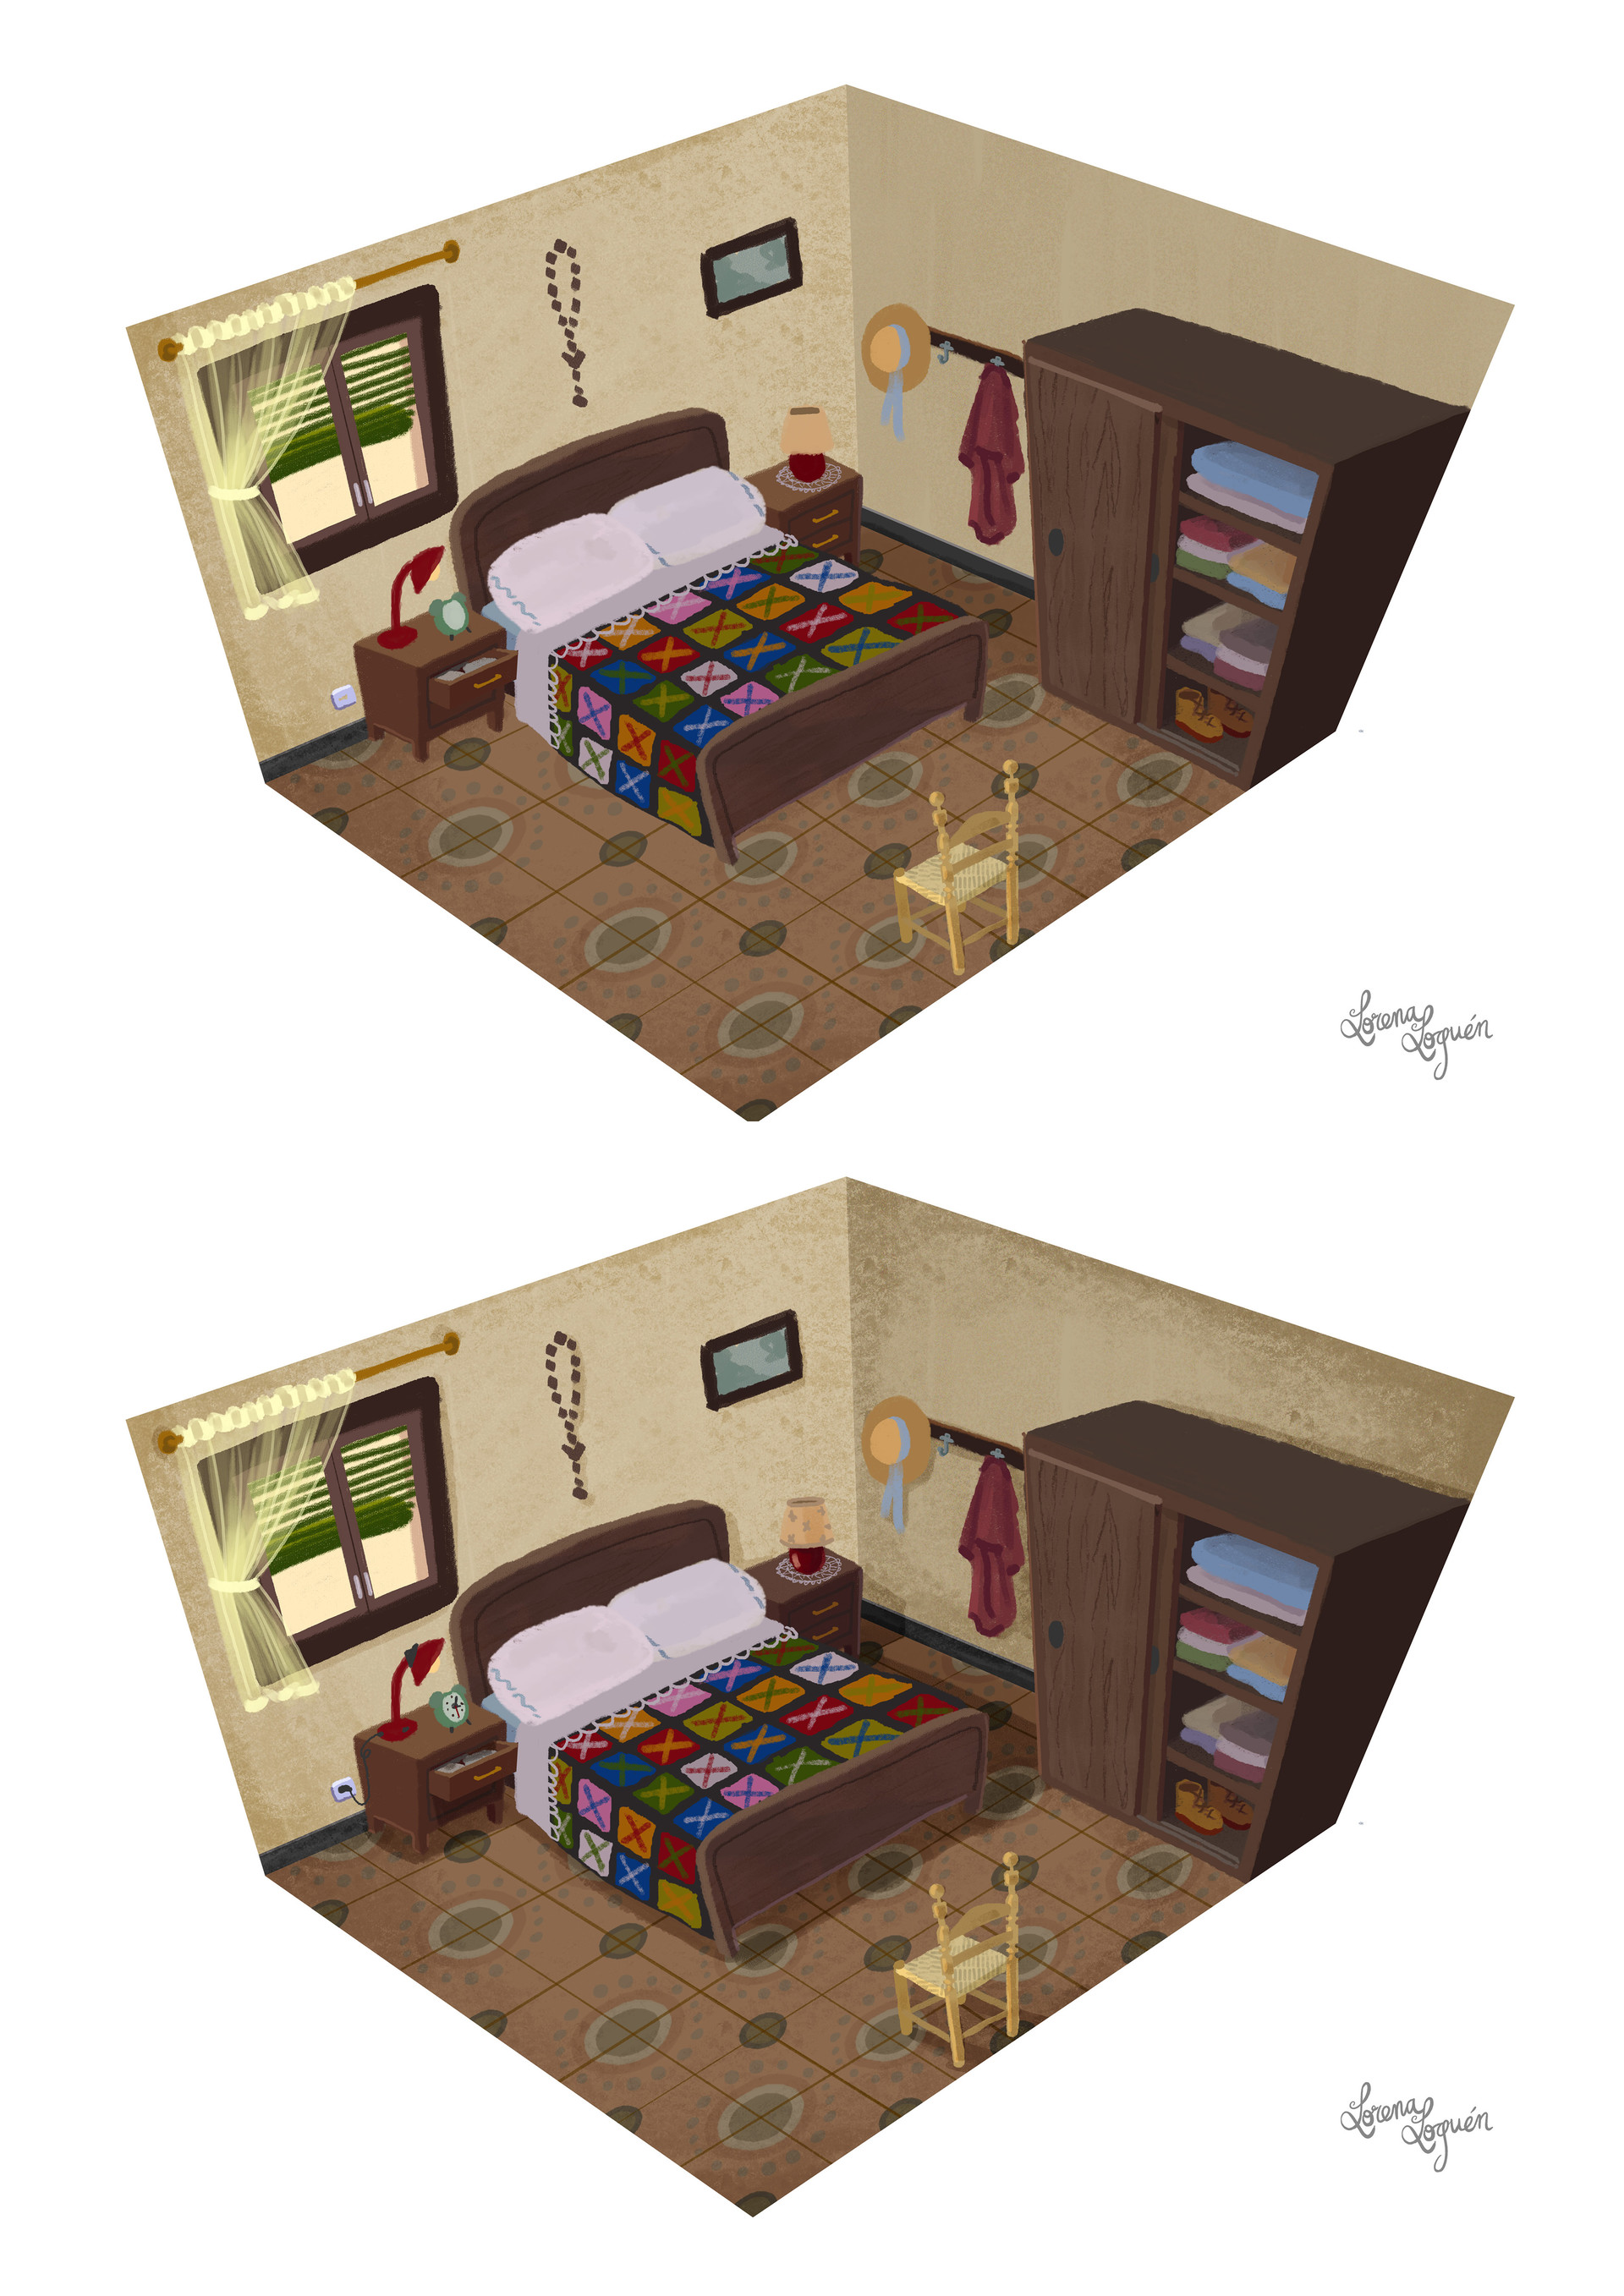 Lorena loguen bedroom concept art by lorena loguen steps 02